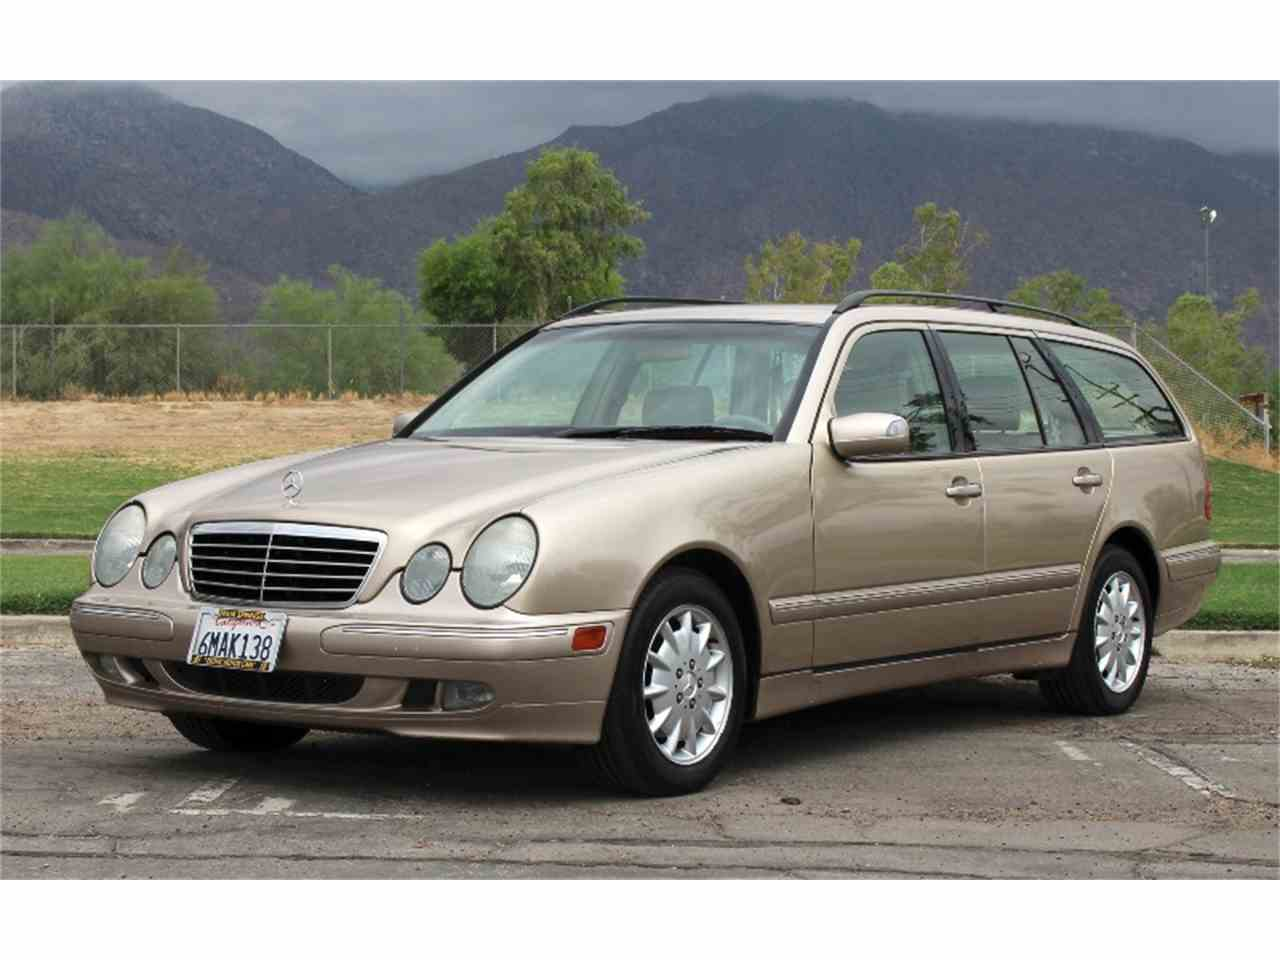 2000 mercedes benz e320 wagon for sale for Mercedes benz inspection cost